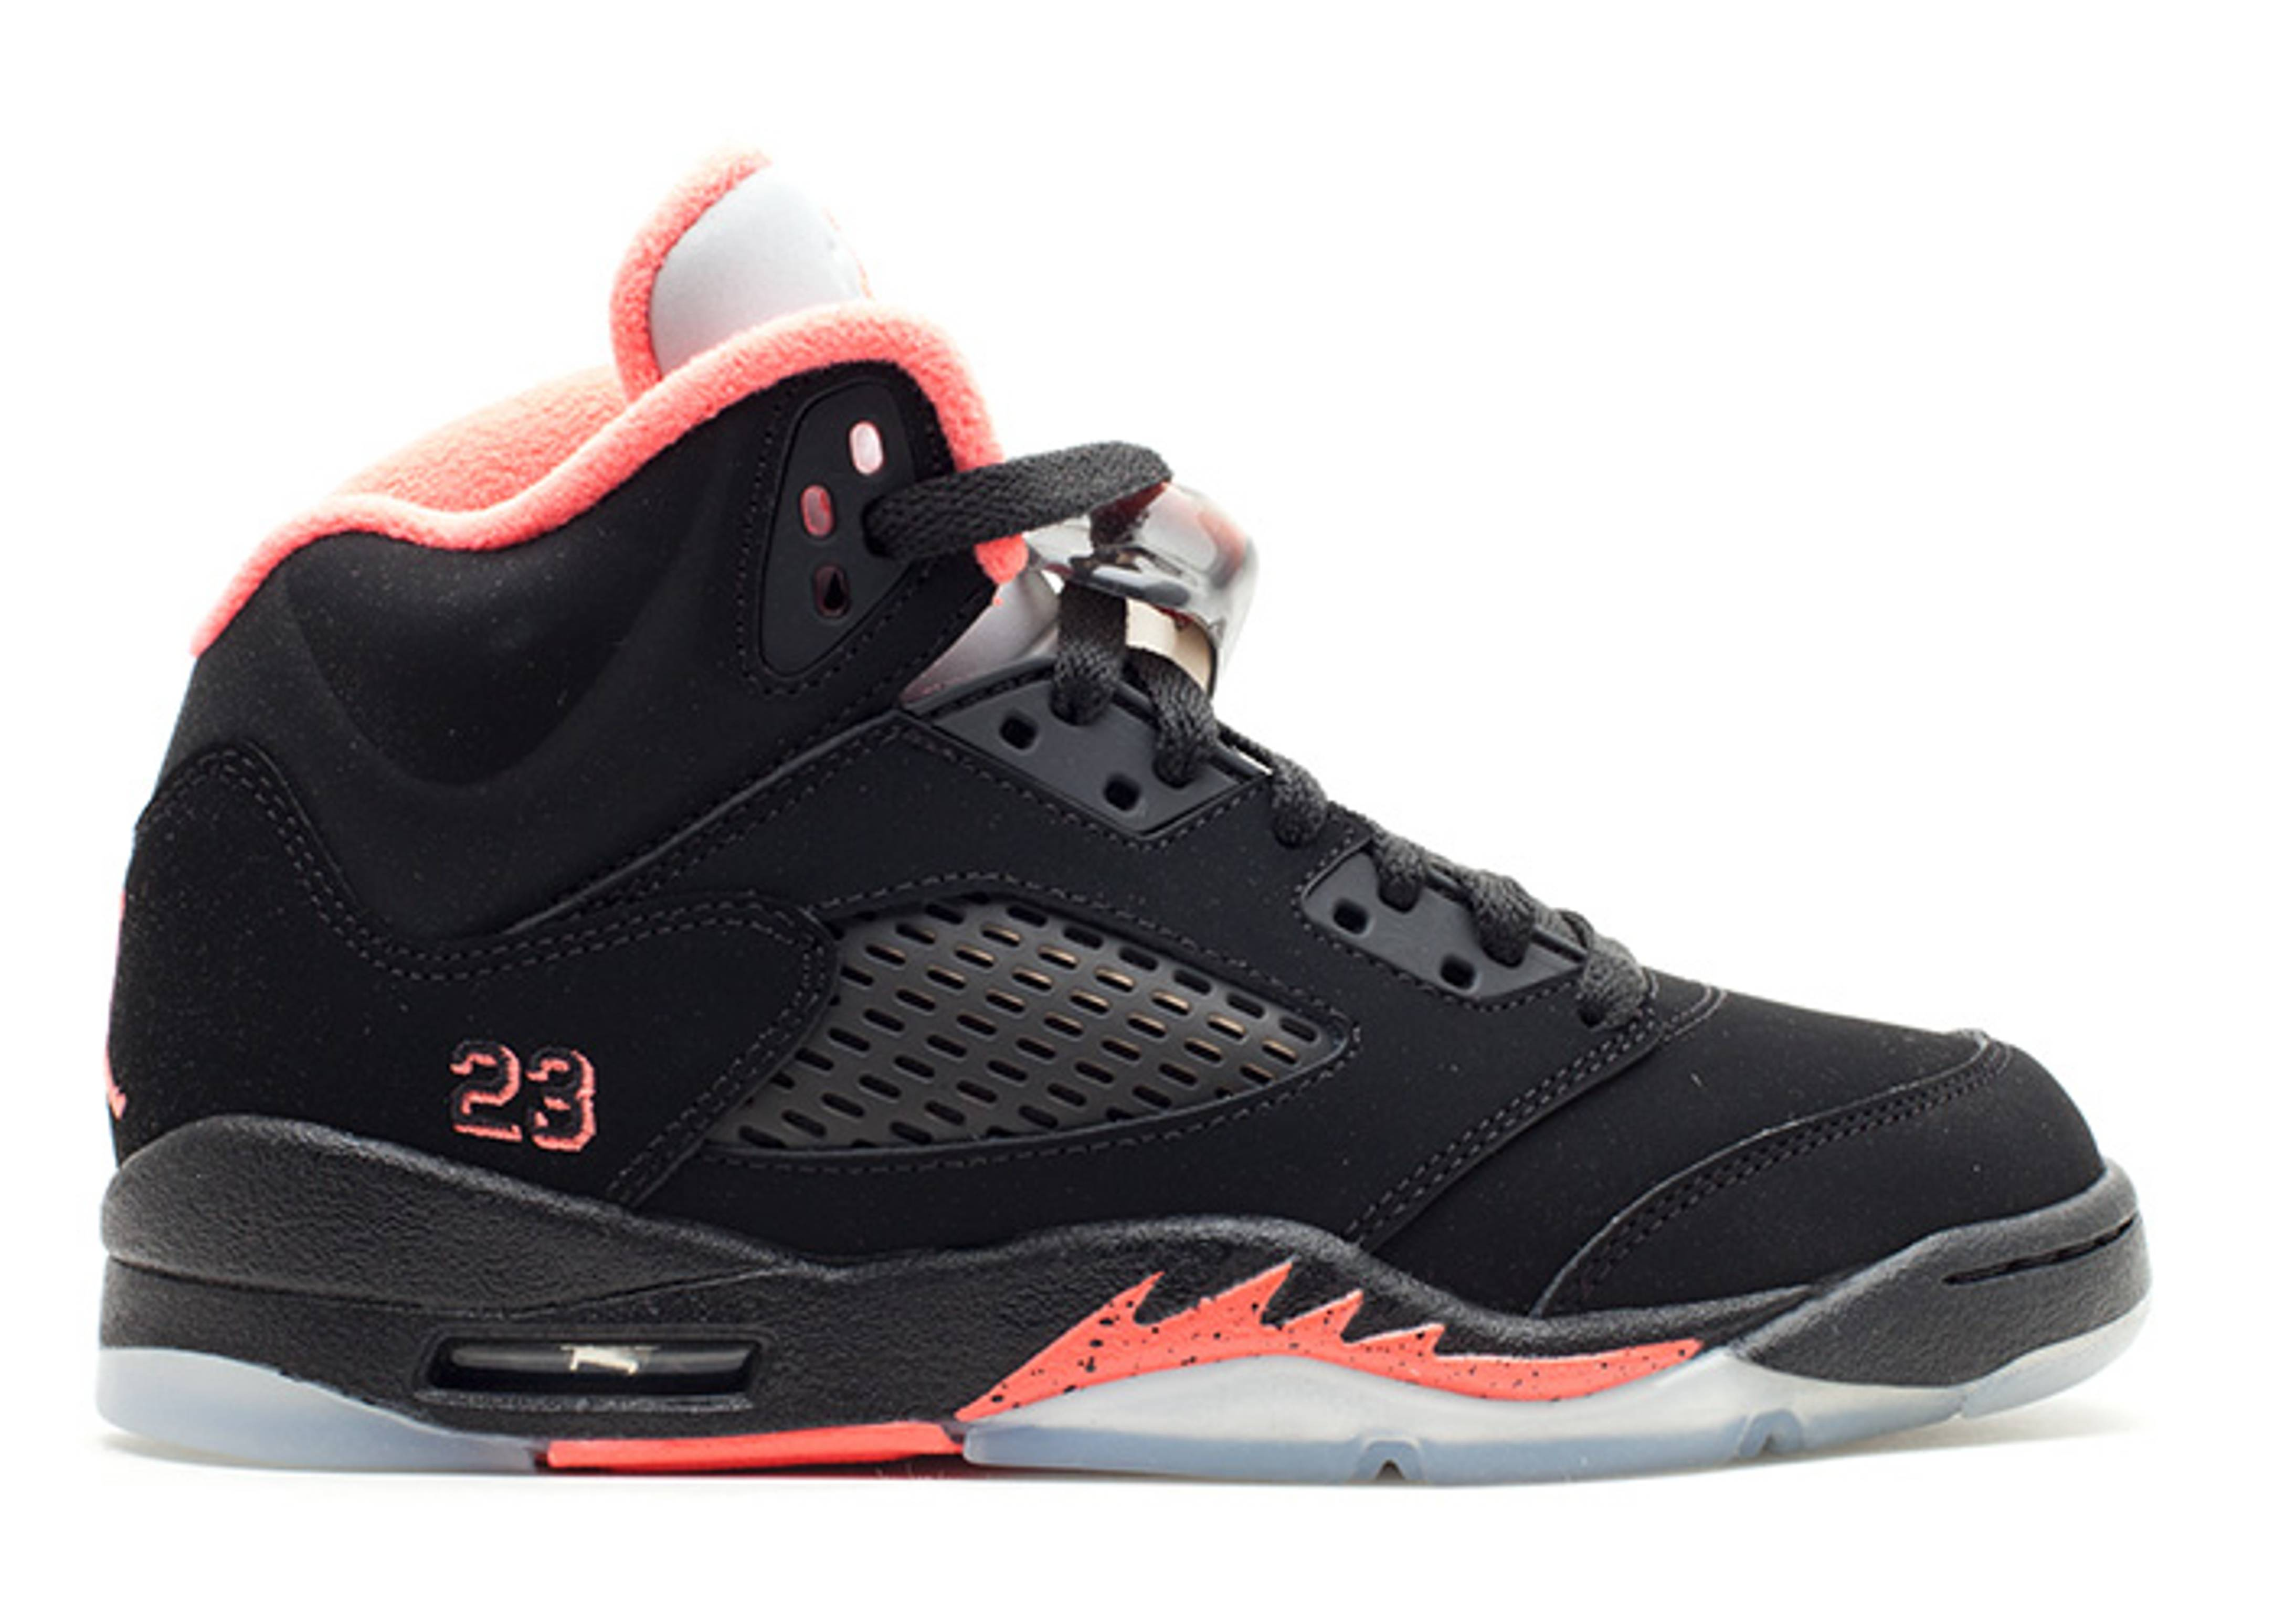 b8d5f63b5d09ea Girls Air Jordan 5 Retro (gs) - Air Jordan - 440892 001 - black ...